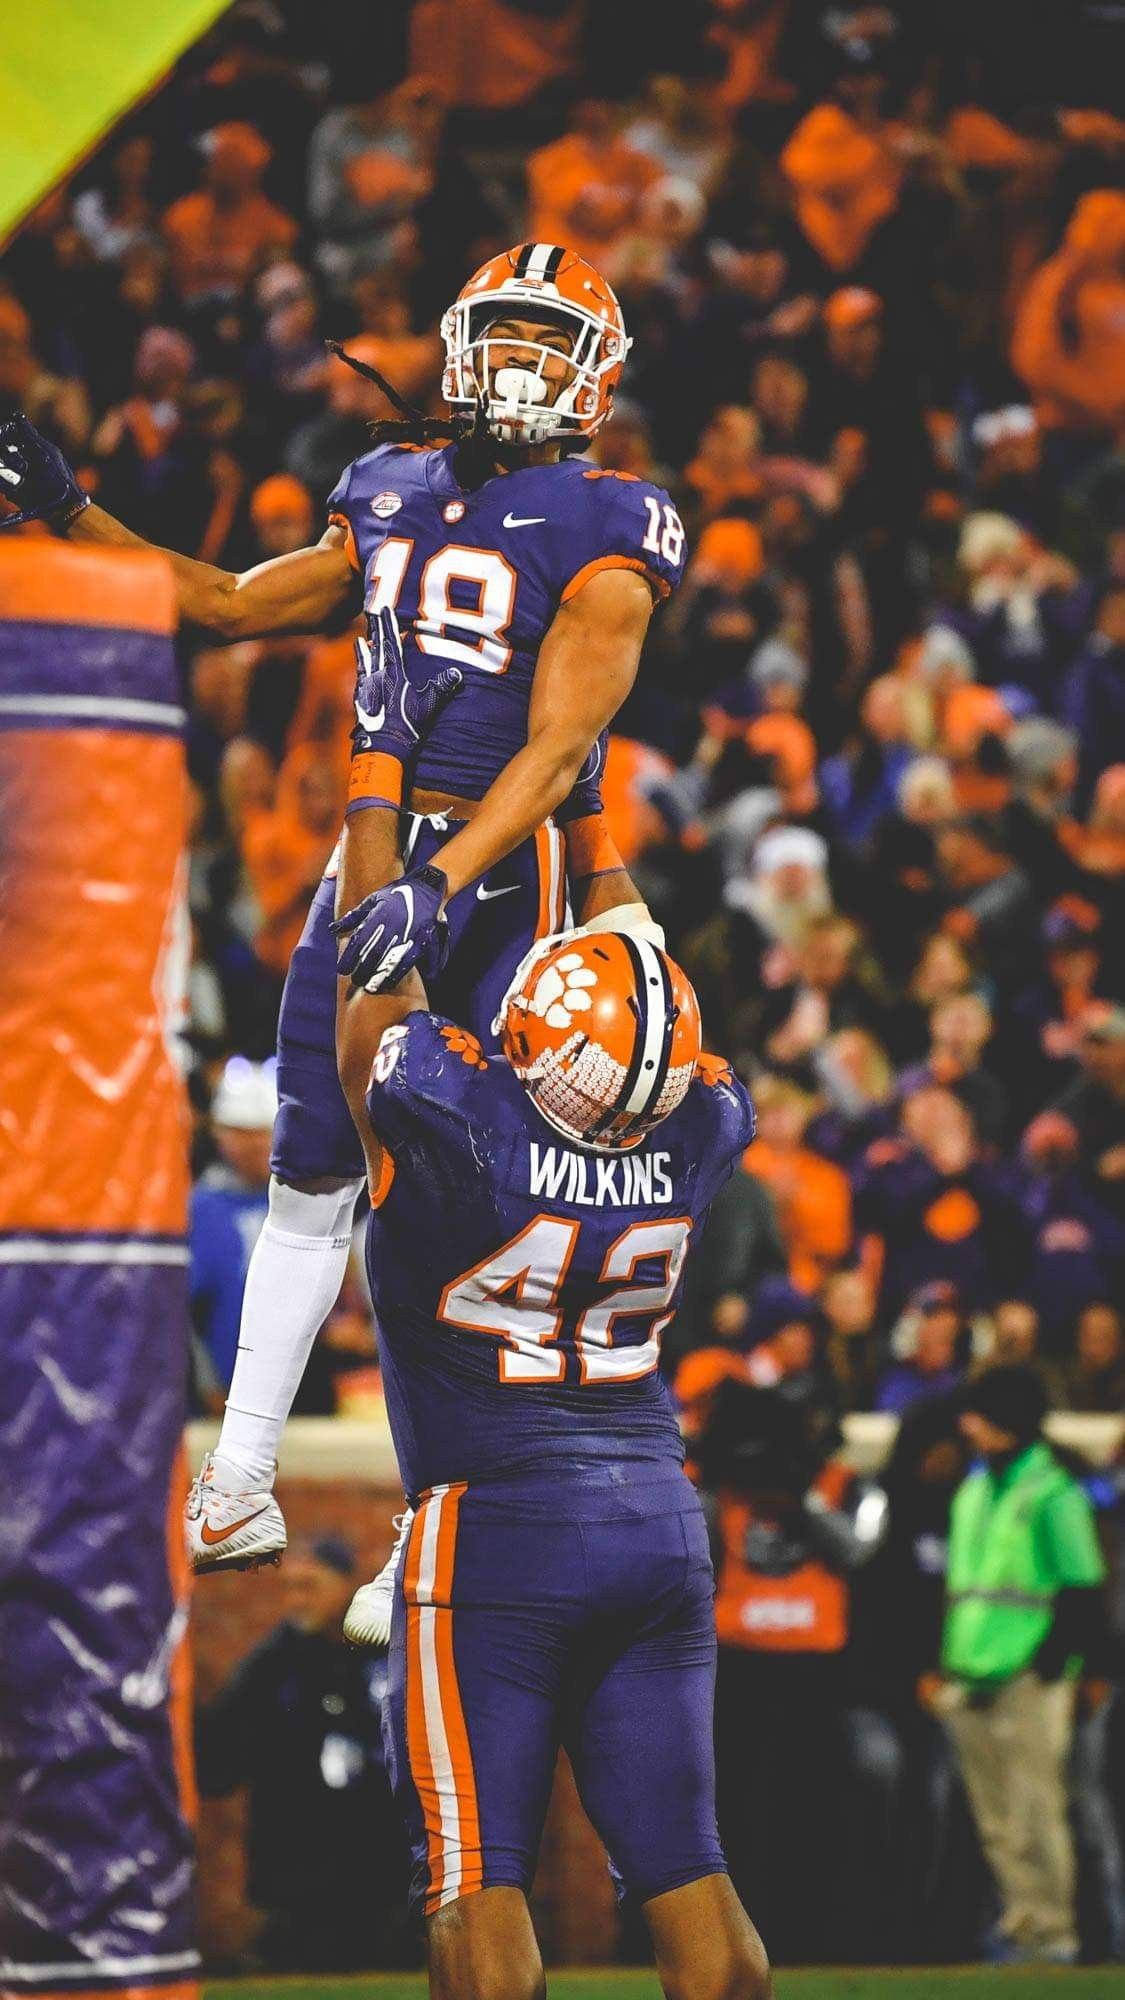 Pin By Kimberly Dean On My Tigers Football Clemson Tigers Football Clemson Football Clemson